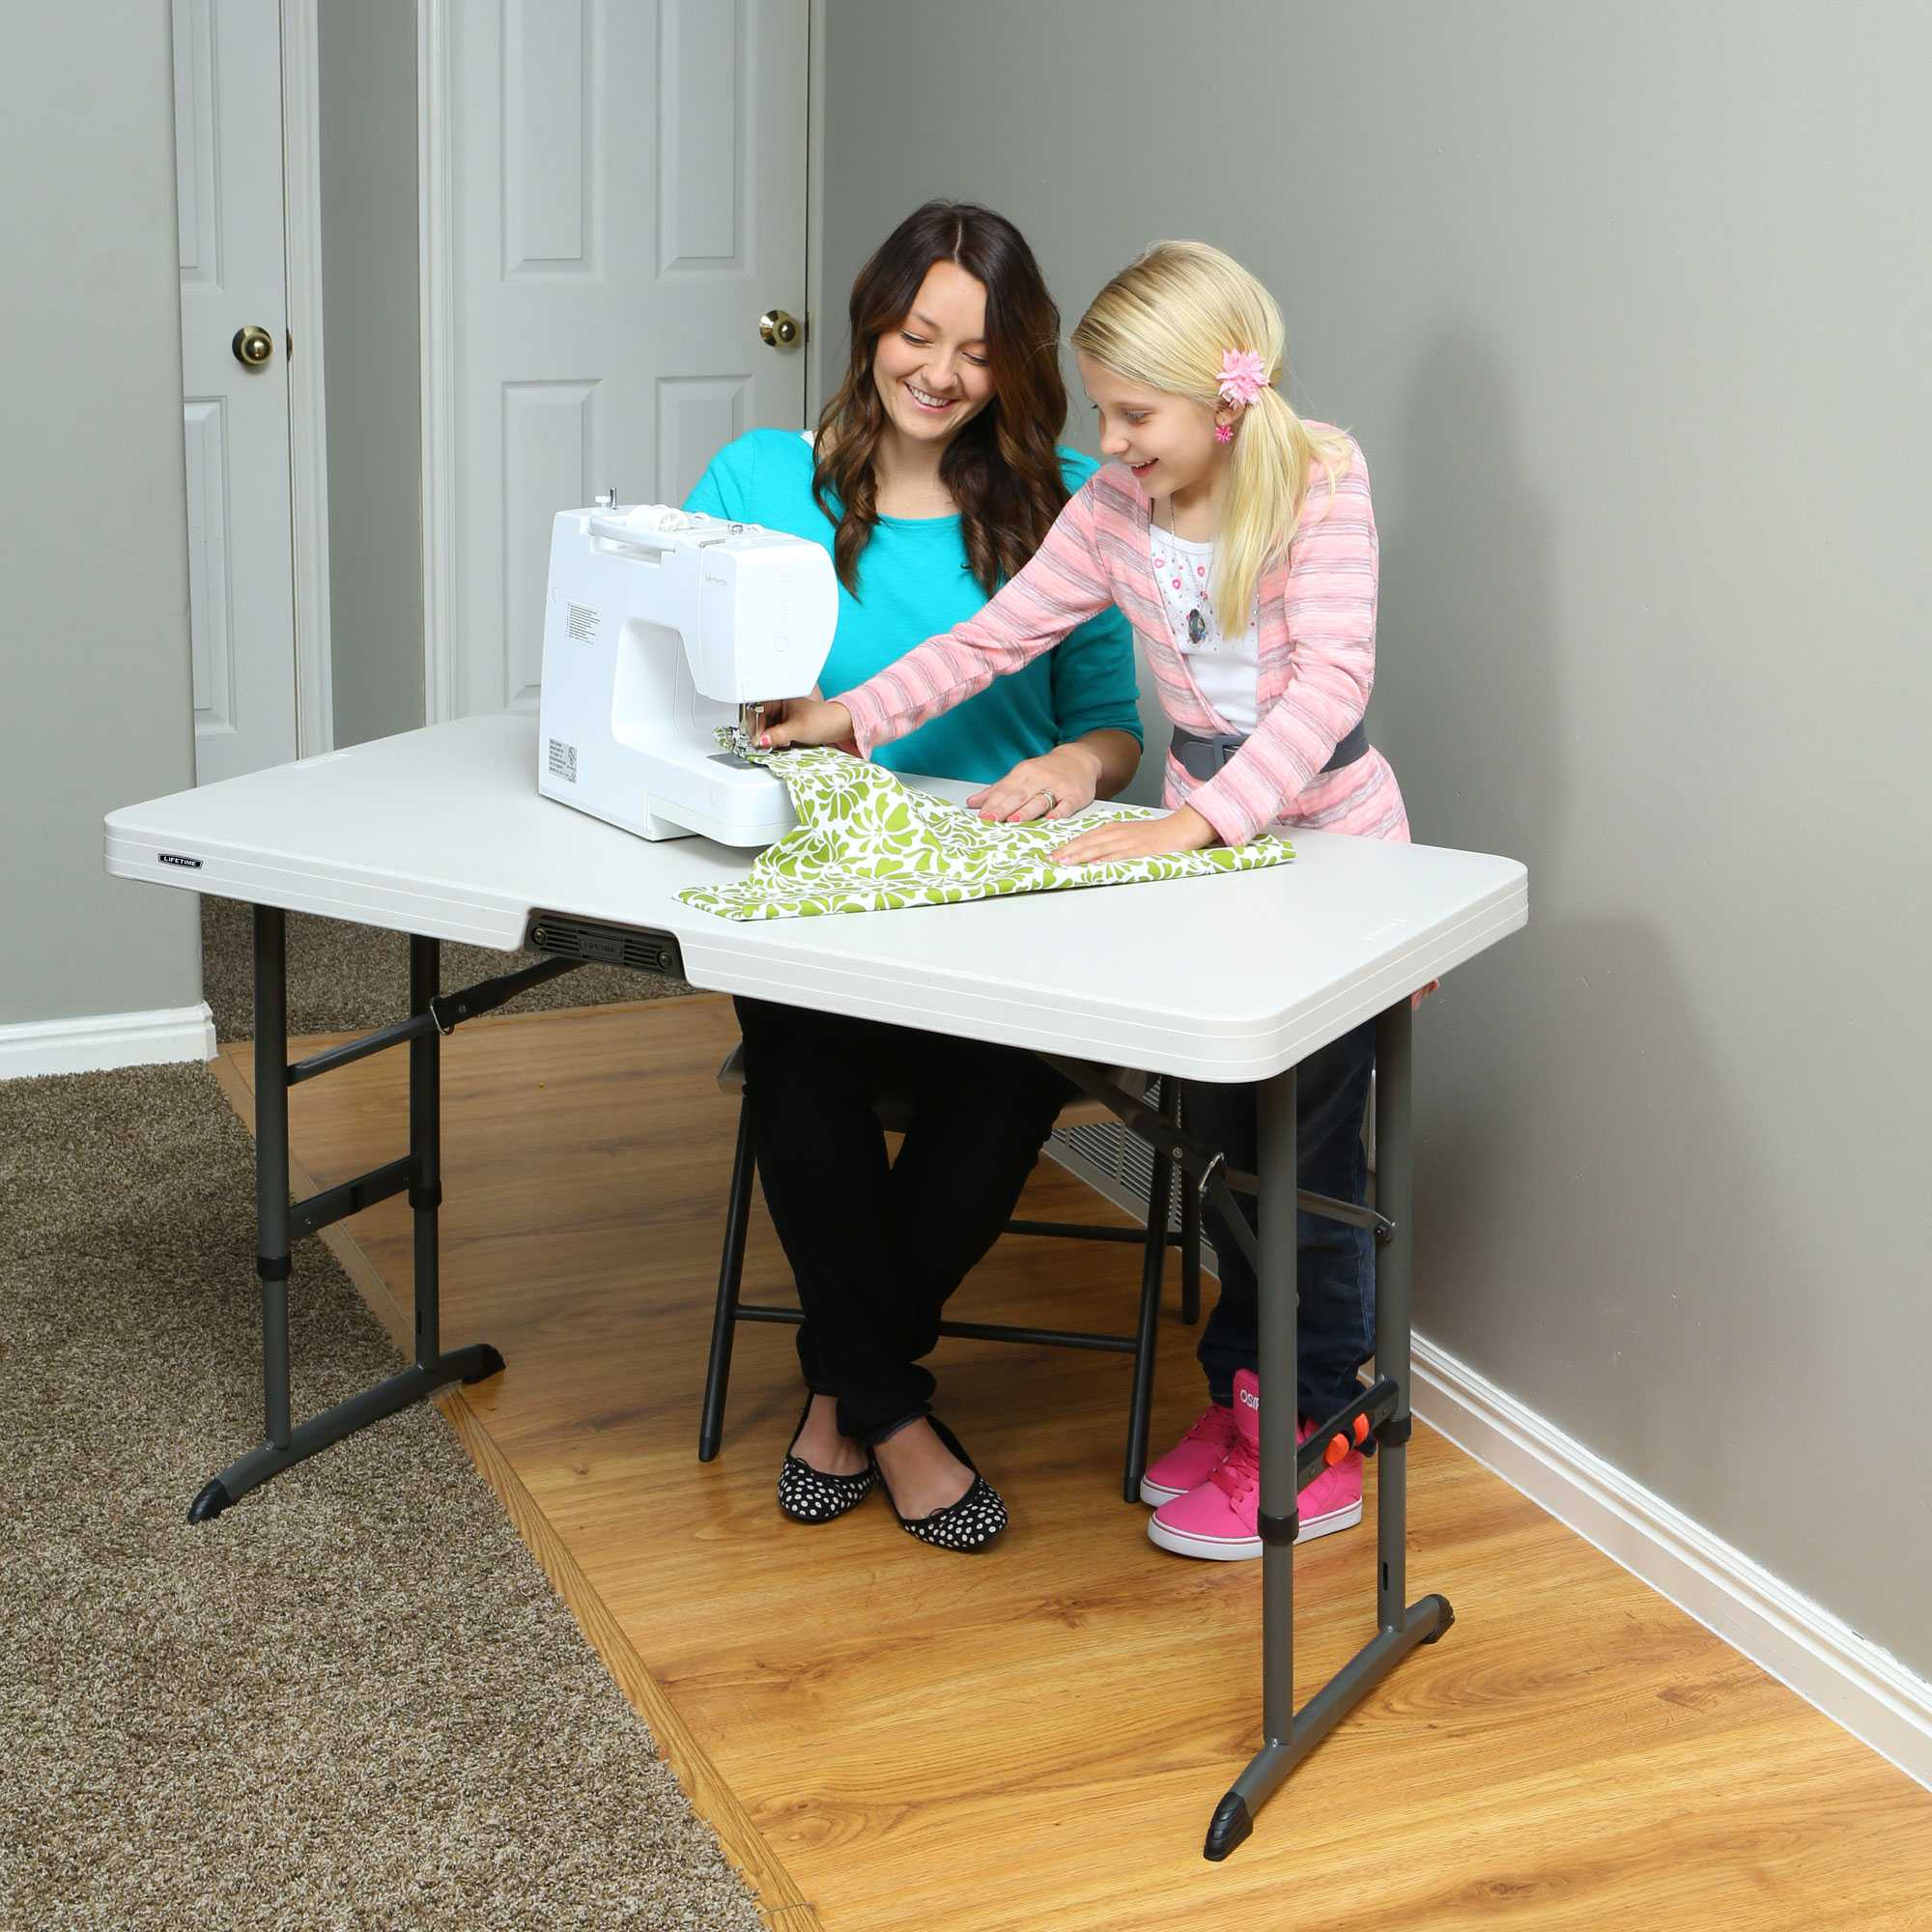 4 Foot Commercial Adjustable Folding Table Almond 80370